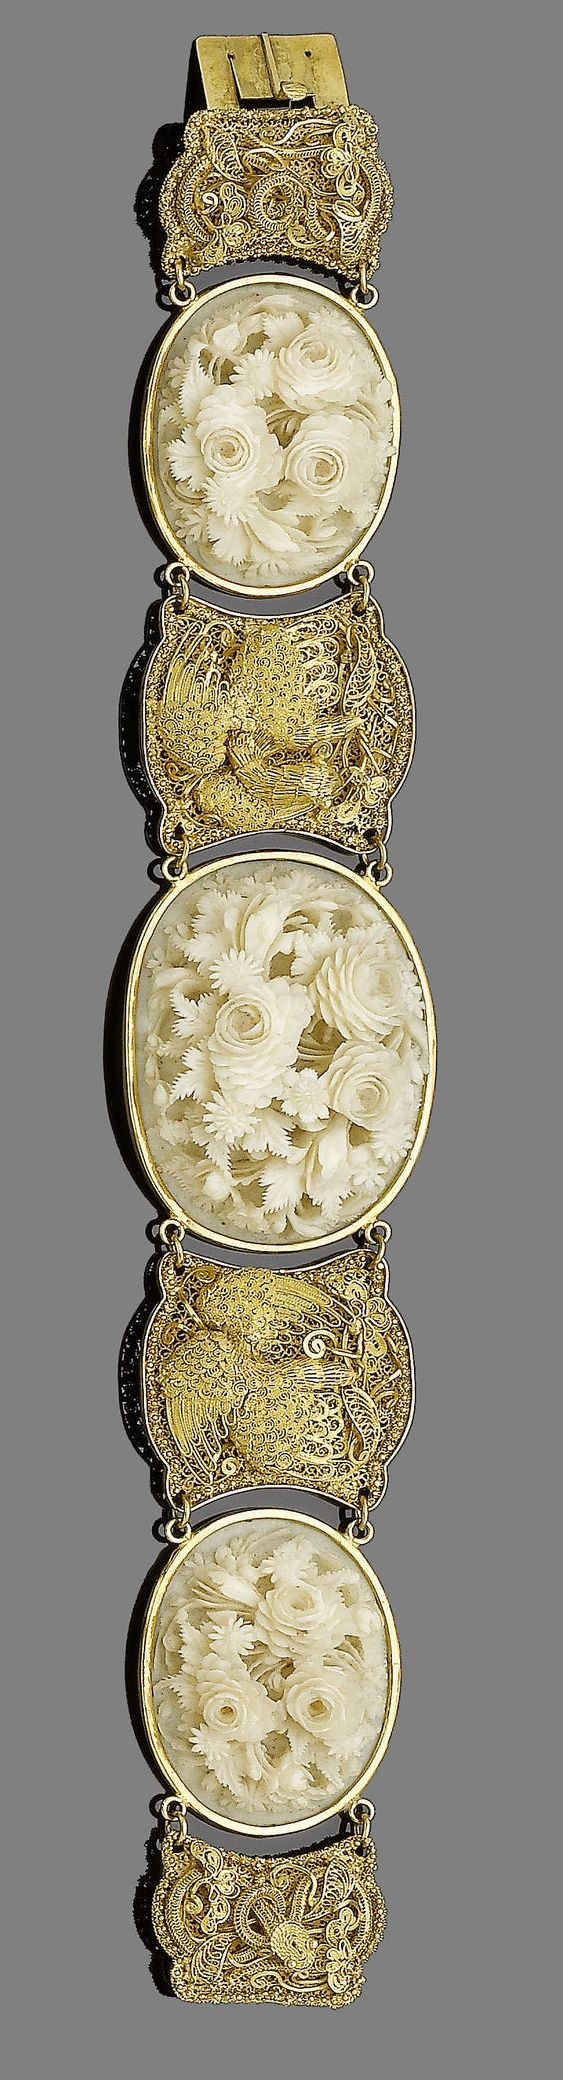 A late 19th century gold and ivory bracelet Set with three oval ivory plaques, each finely carved in high relief depicting floral bouquets, with graduated gold filigree spacers depicting phoenixes and serpents, Chinese maker's mark, retailer's mark W.W, damage to one filigree plaque, length 18.2cm, later fitted ivory case